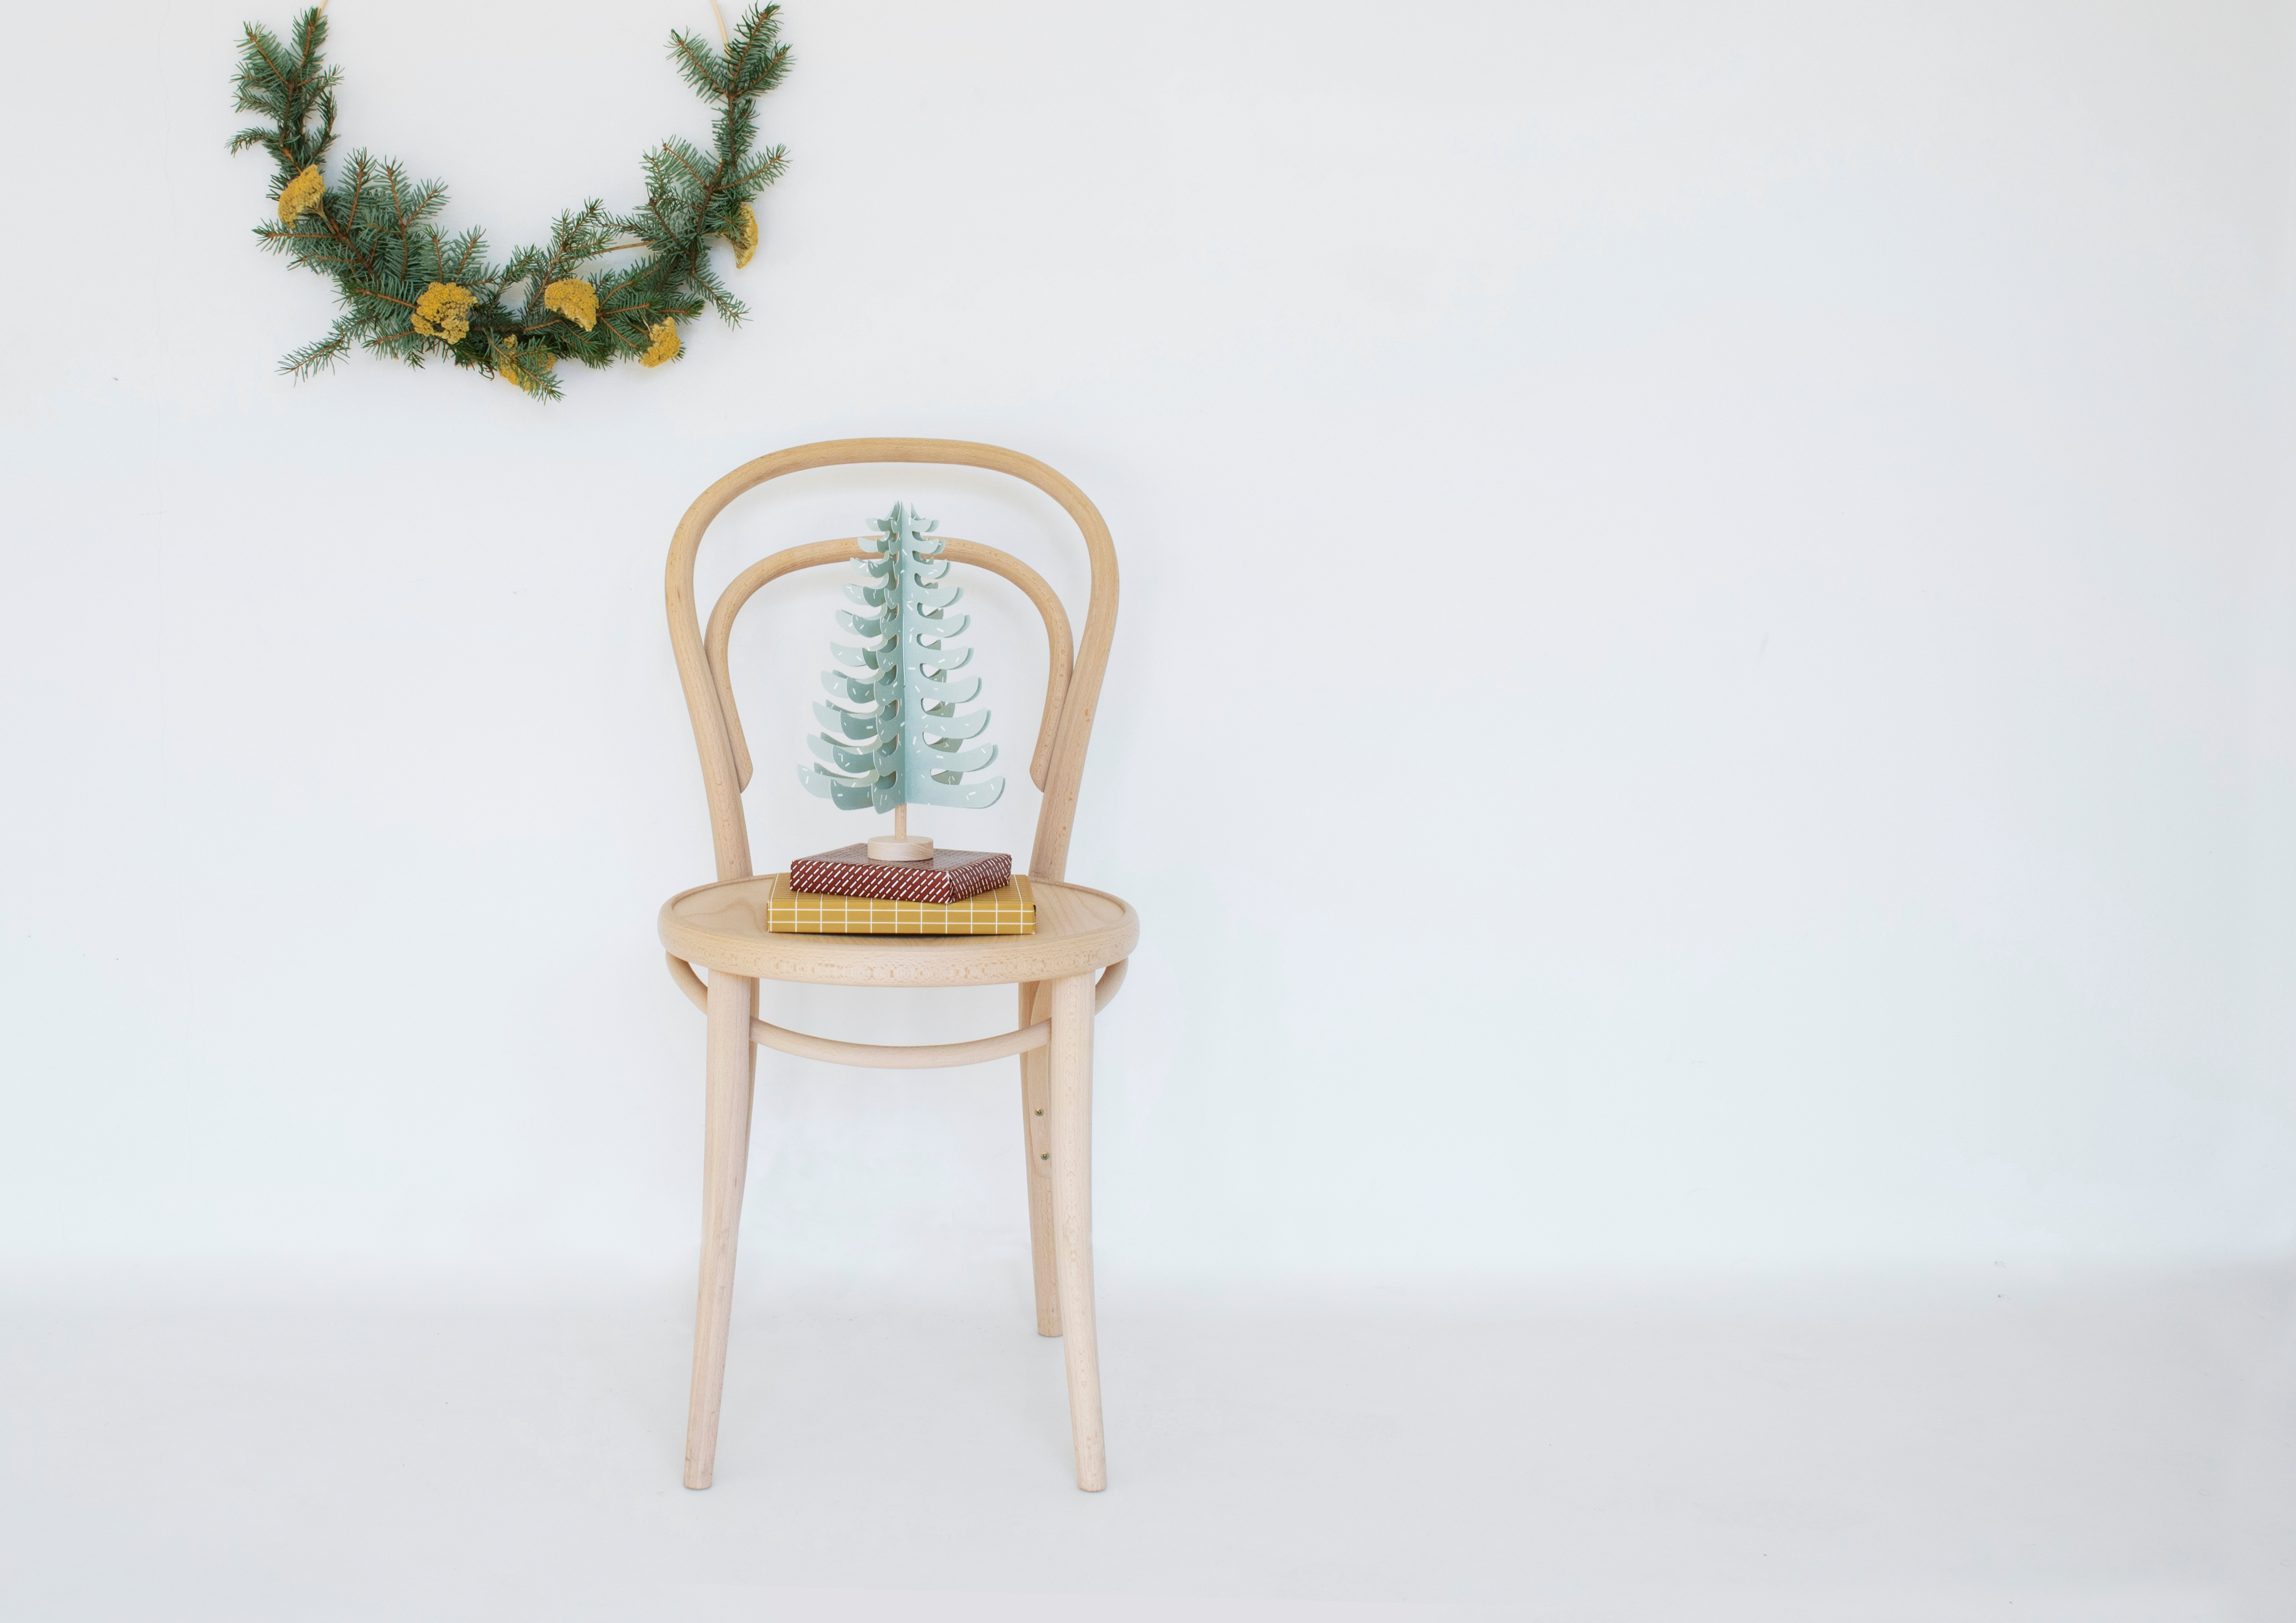 FIR-on-chair-gifts-horiz